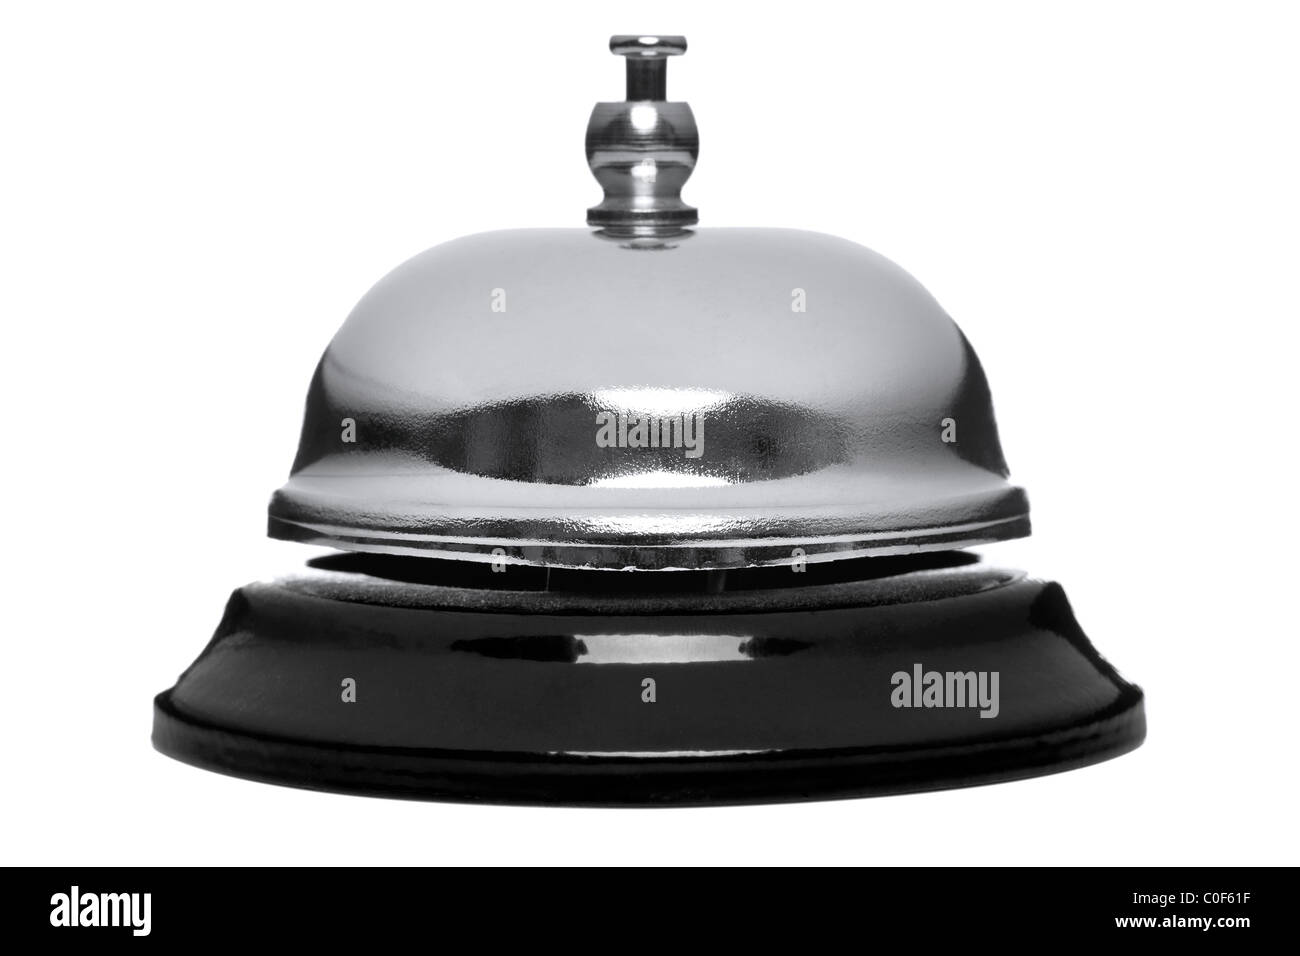 Photo of a chrome reception bell isolated on a white background. - Stock Image